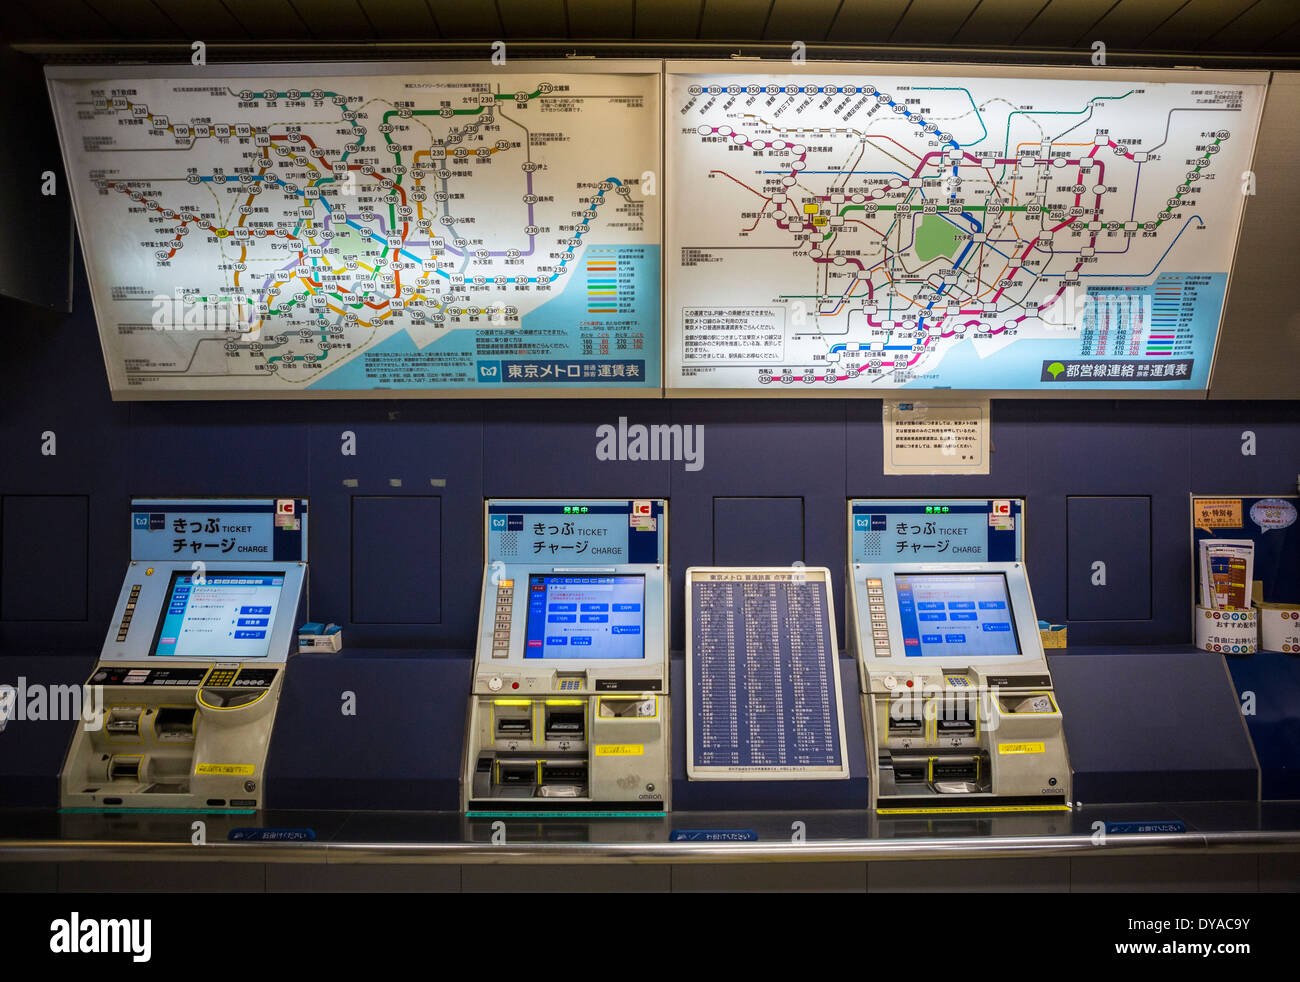 Japan, Asia, Tokyo, Metropolitan, Ticket, city, dispenser, fast, machine, map, subway, urban - Stock Image